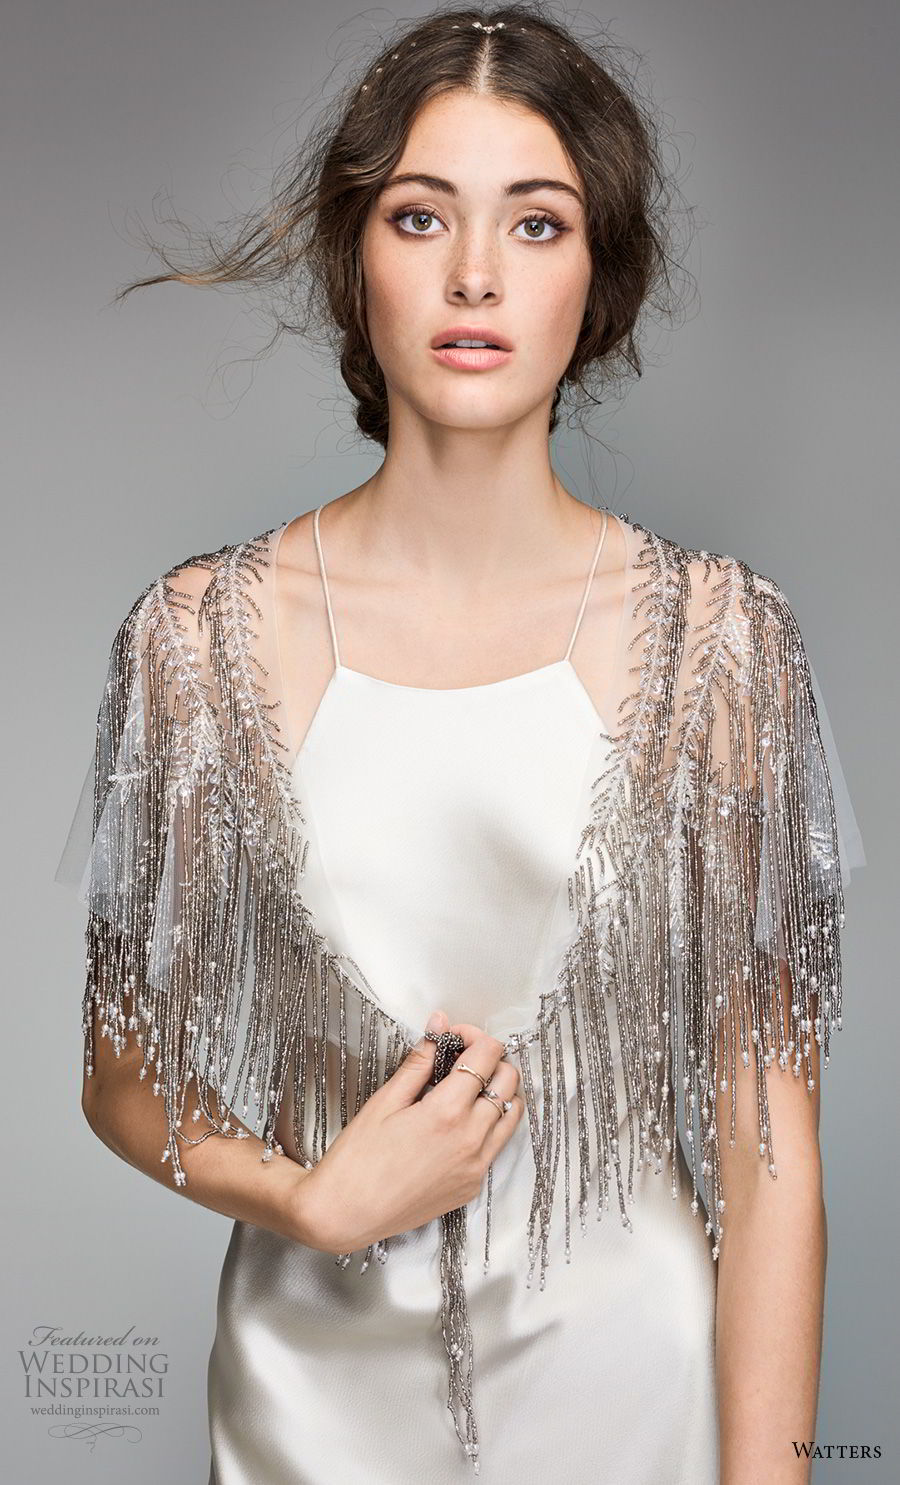 willow by watters spring 2018 ayperiwrap shaw wedding accessories front